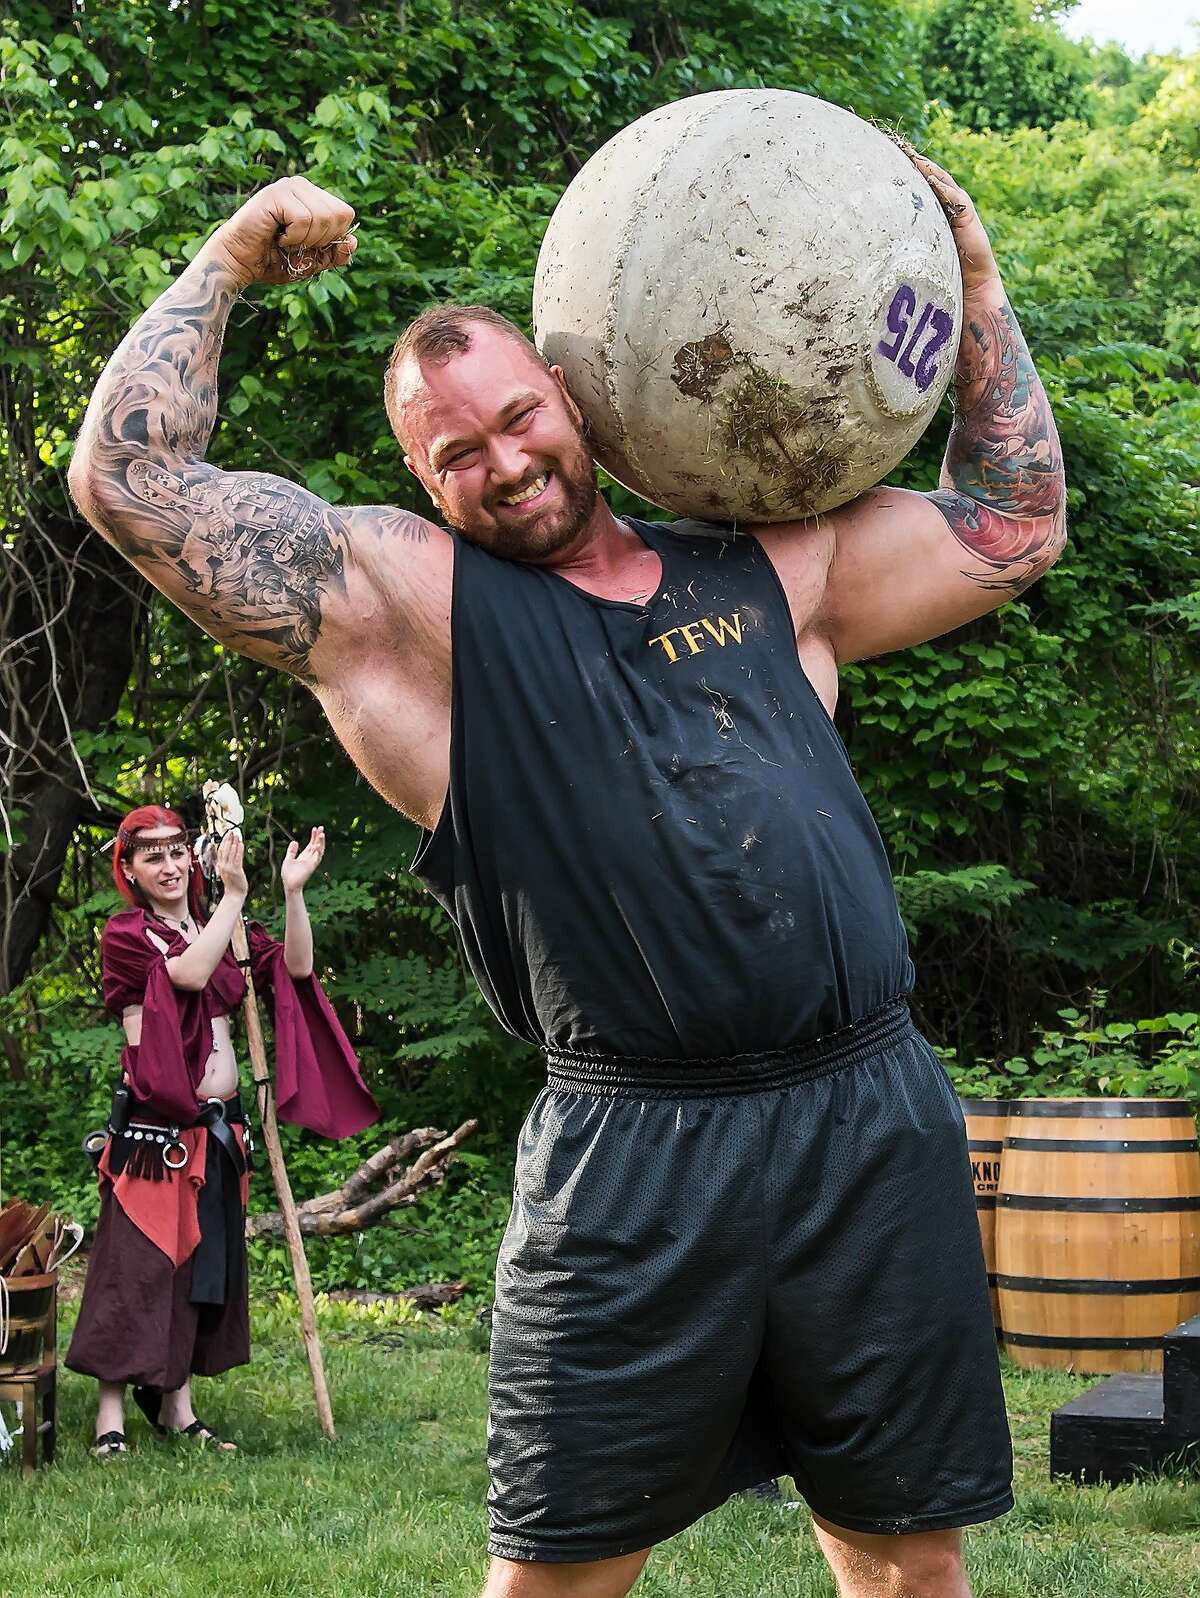 Before he began tossing 215-pound stones around, a much thinner Bjornssondunked basketballs as a pro-basketball player in Iceland. He also was a member of the Division 2 Icelandic national hoops team.